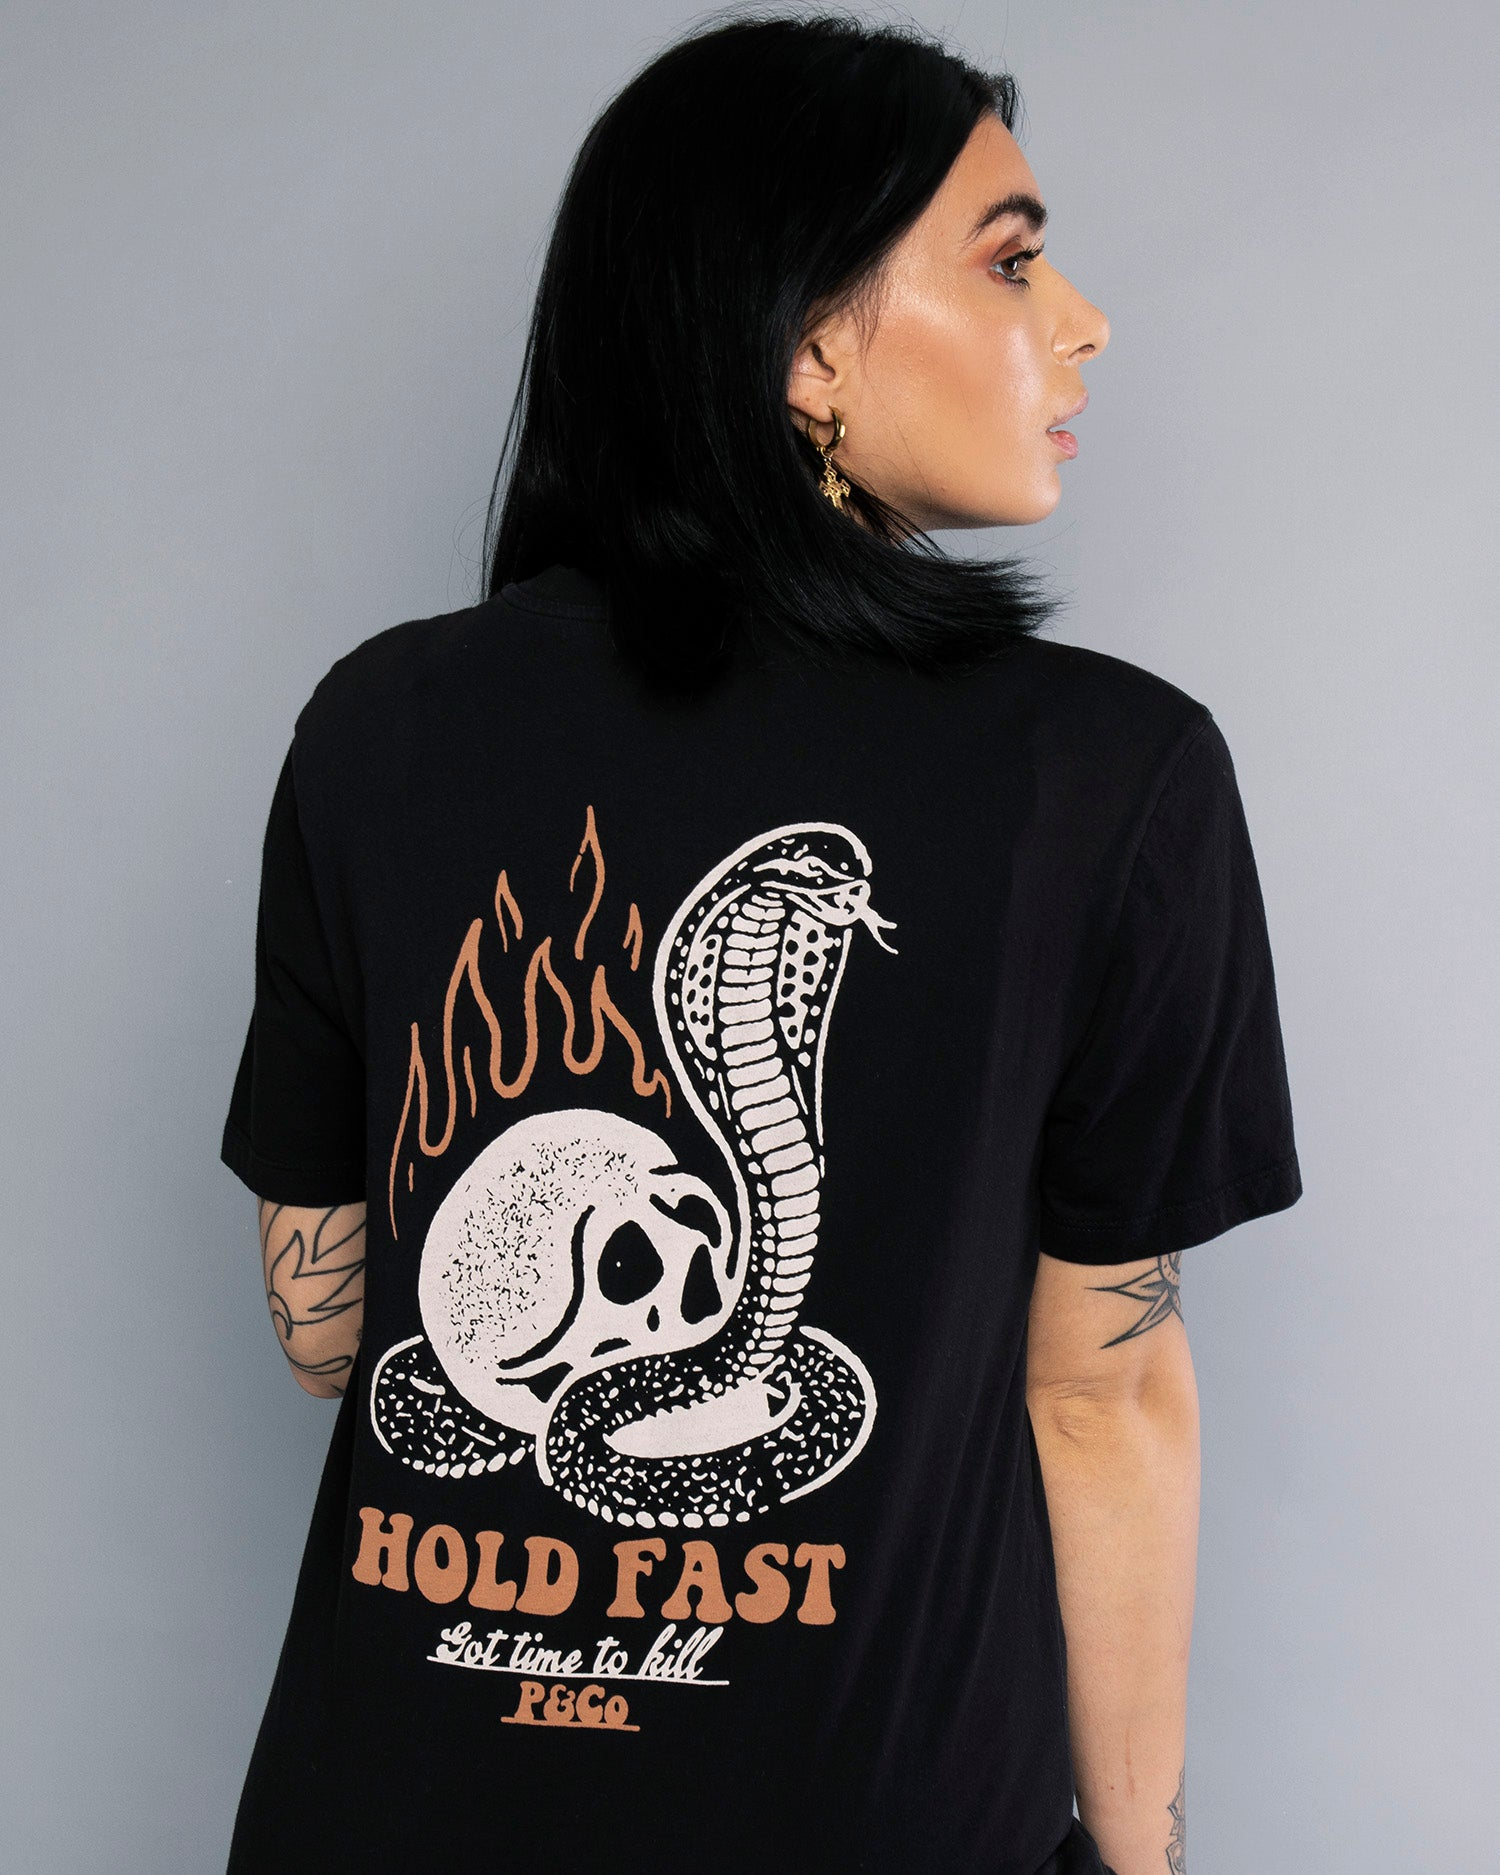 Got Time To Kill Womens Black Printed T-Shirt